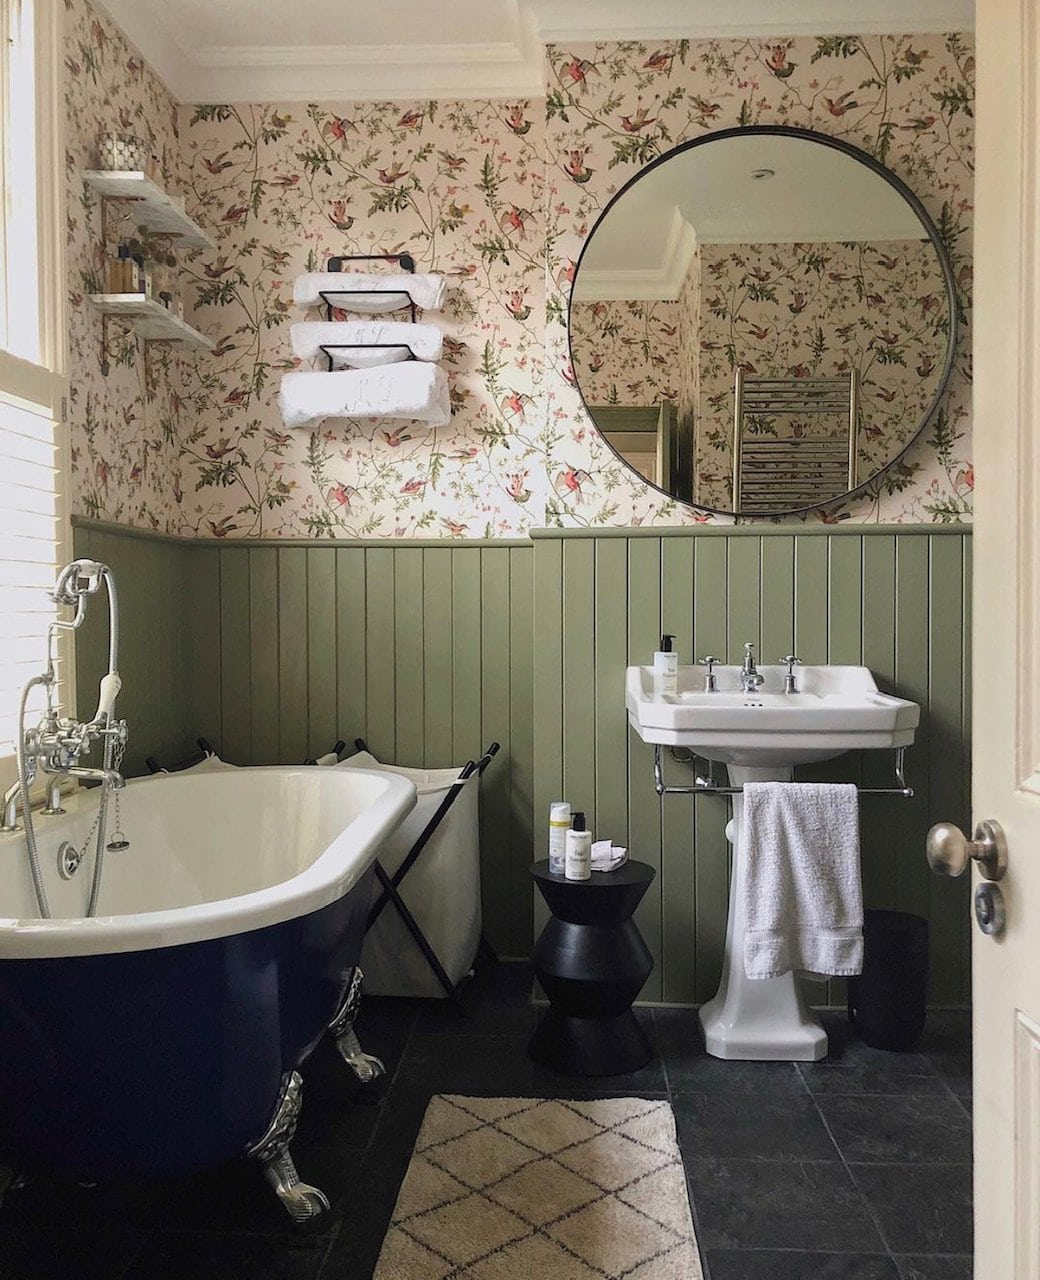 wallpaper, bathroom, panelling, bathroom panelling